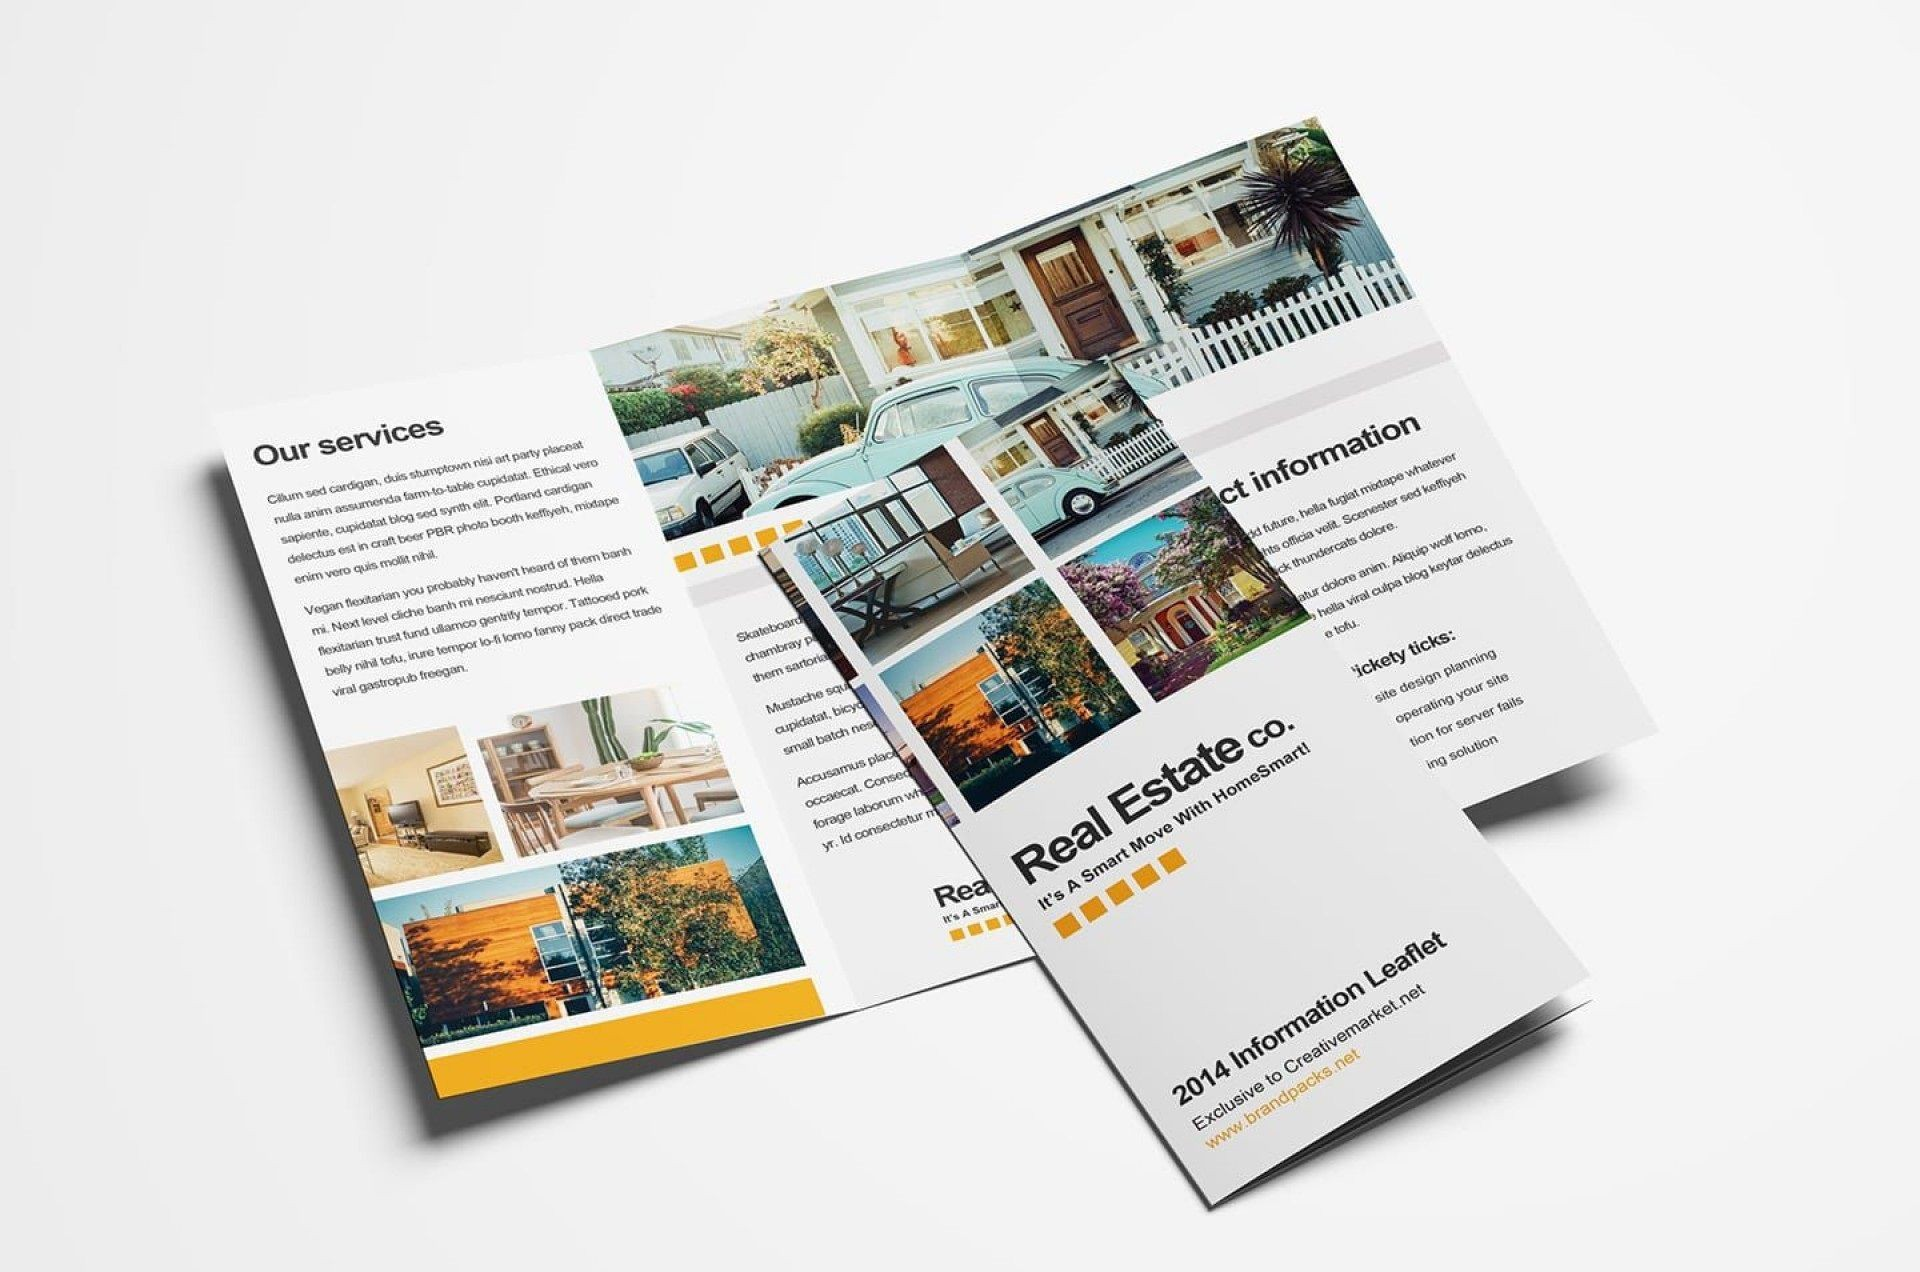 008 Awful Brochure Template Photoshop Cs6 Free Download Sample 1920